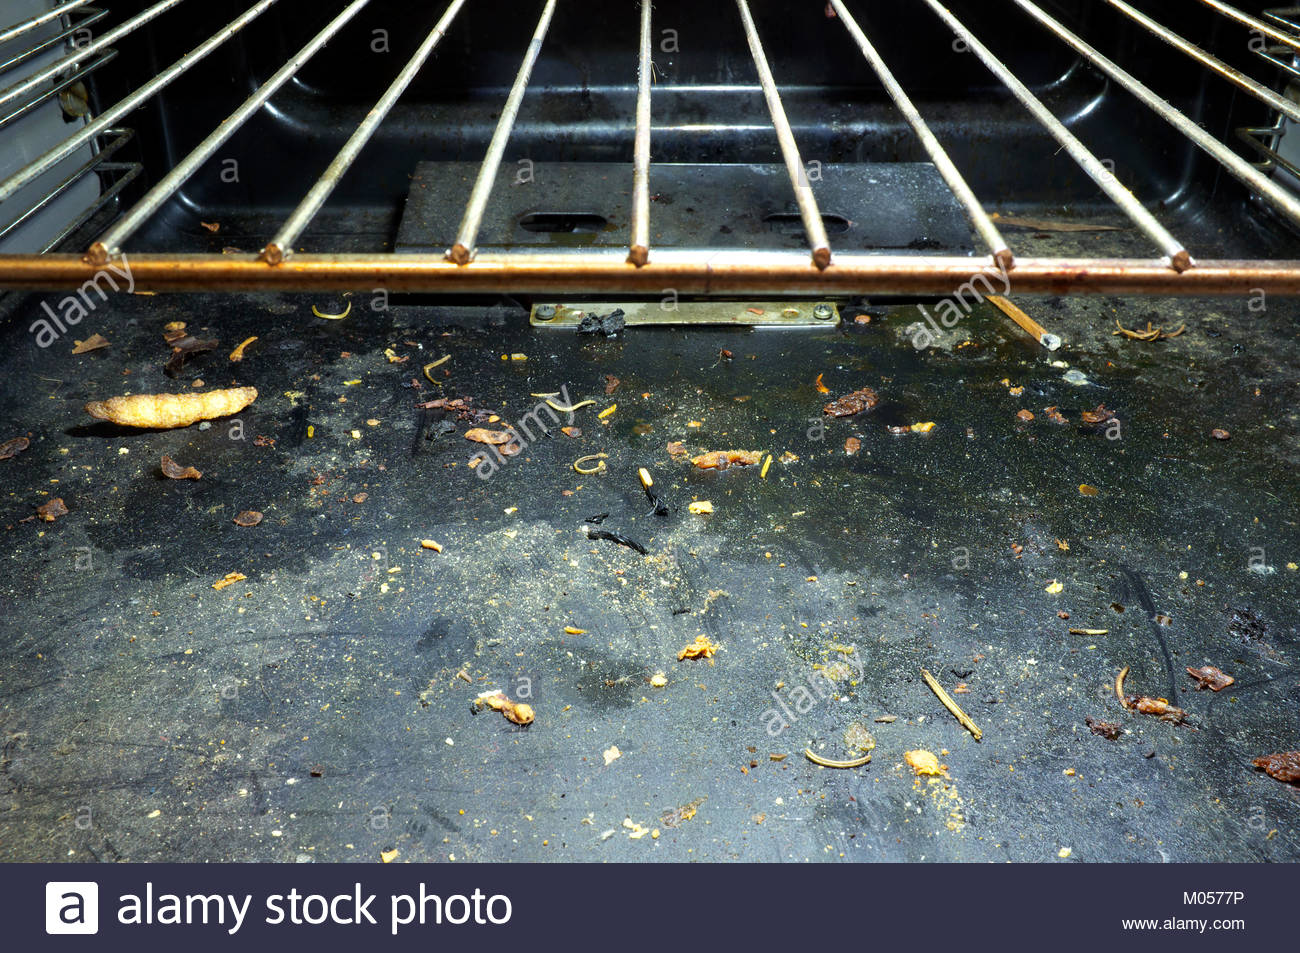 Interior of a dirty unclean domestic gas oven. - Stock Image